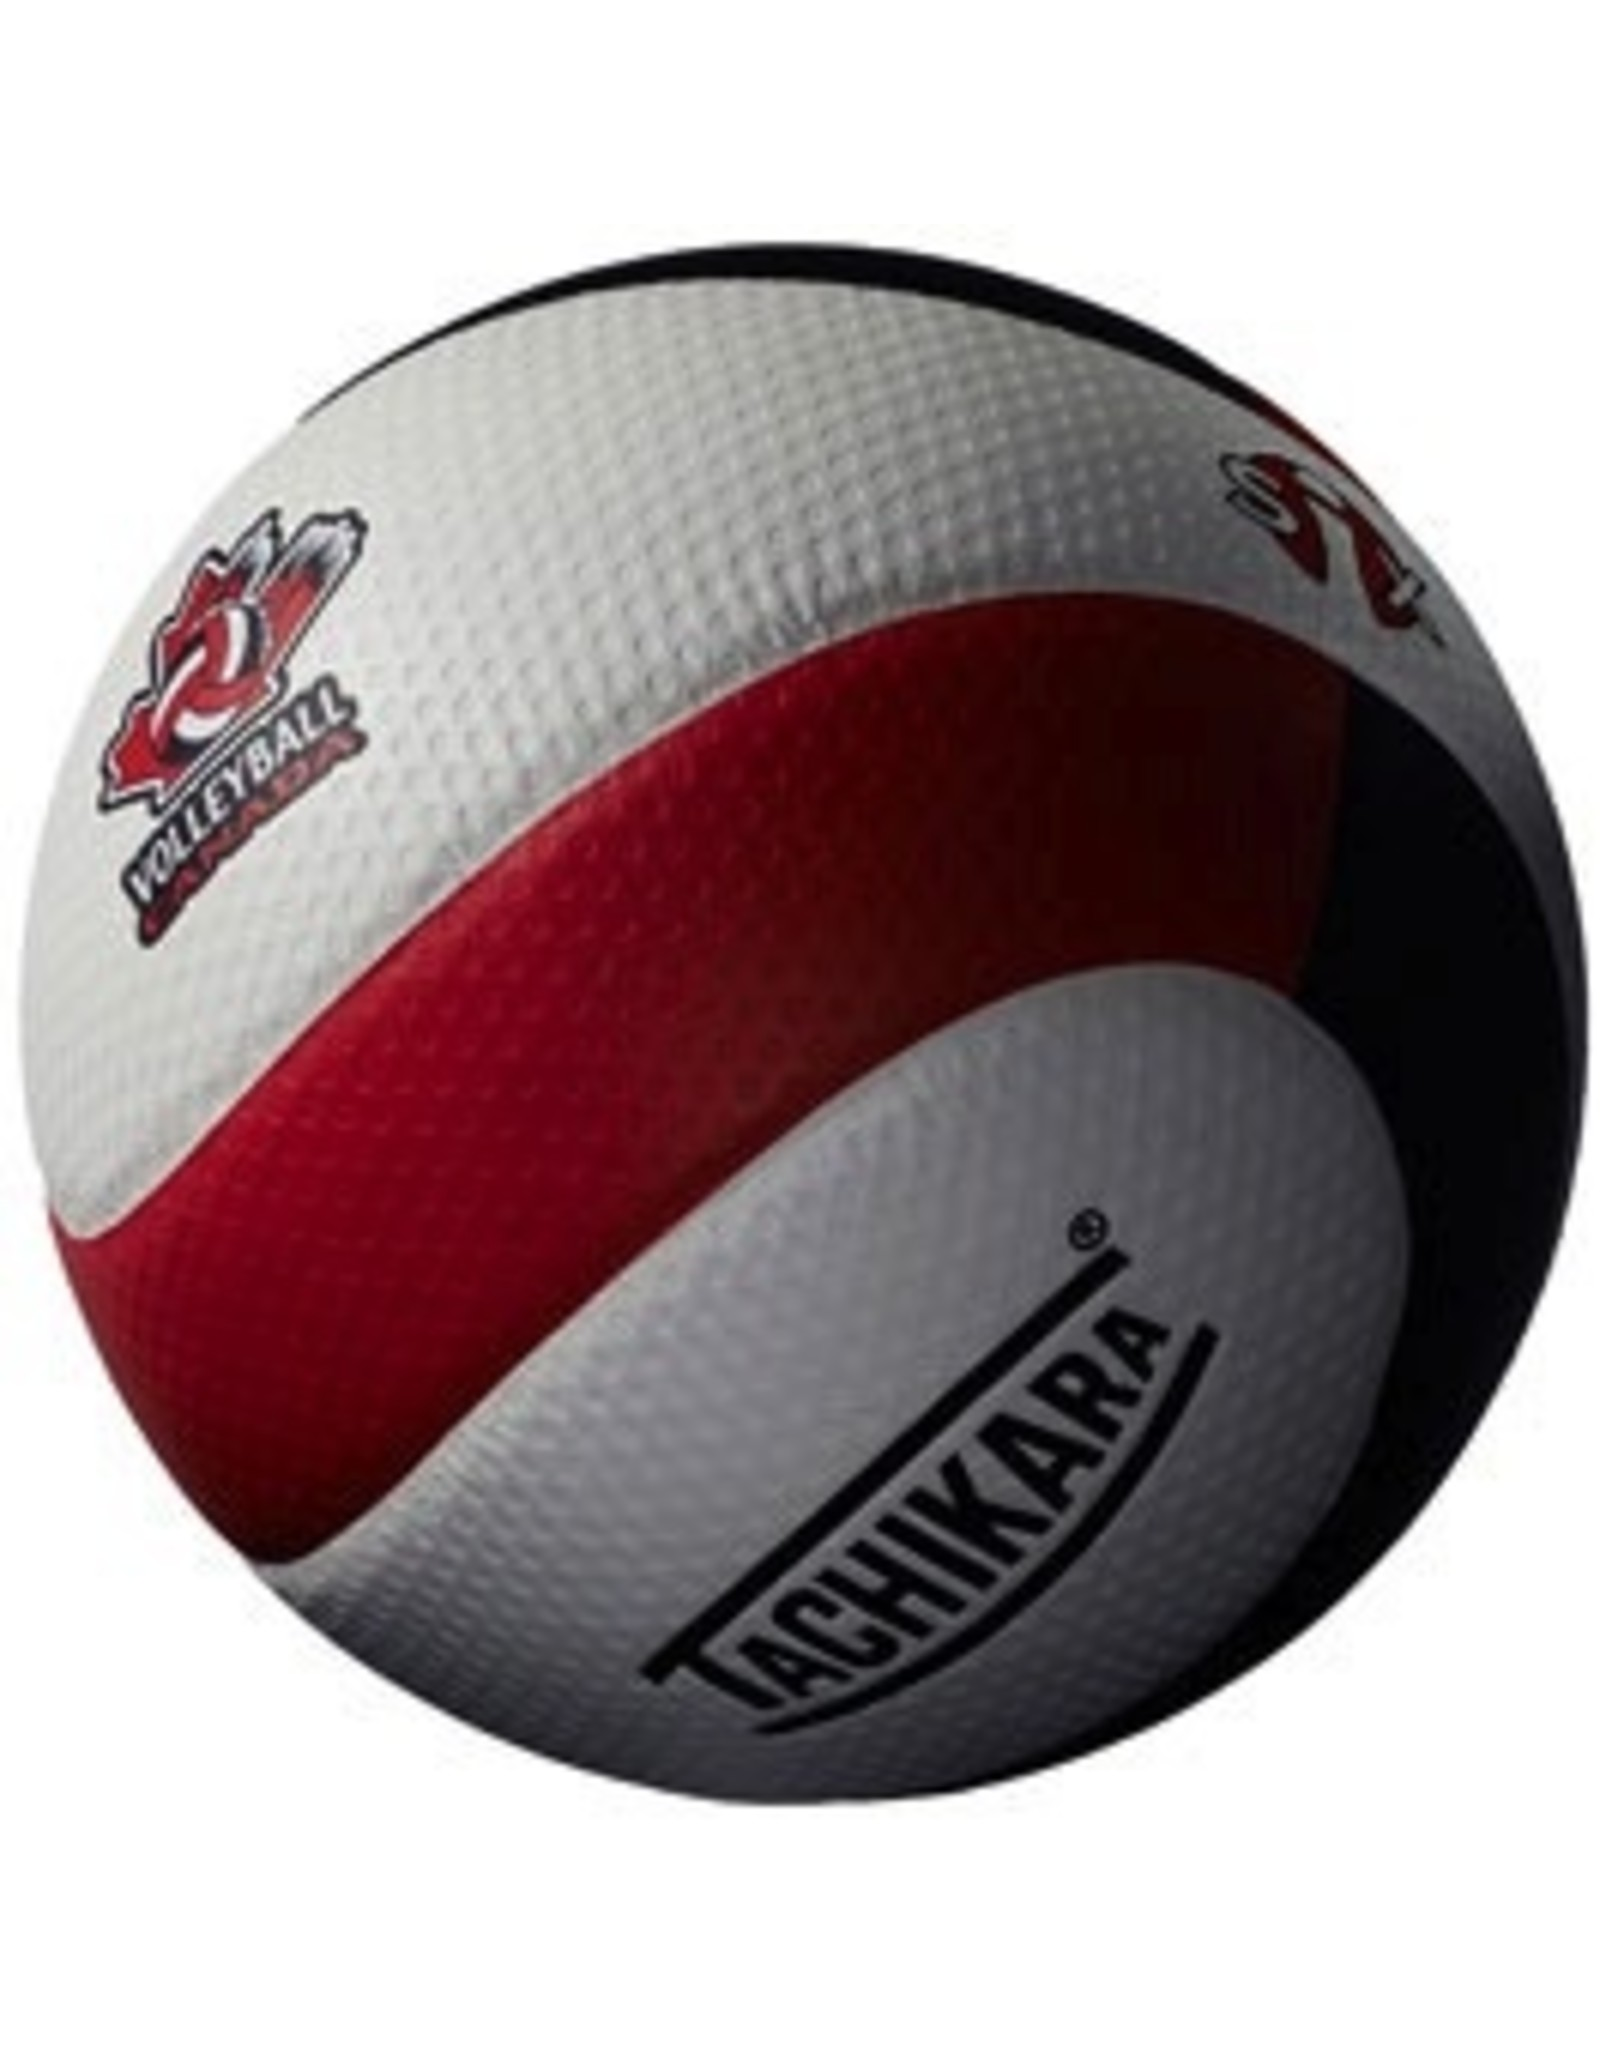 Tachikara Tachikara SIX Volleyball - Official ball for Volleyball Canada 2016 National Championships